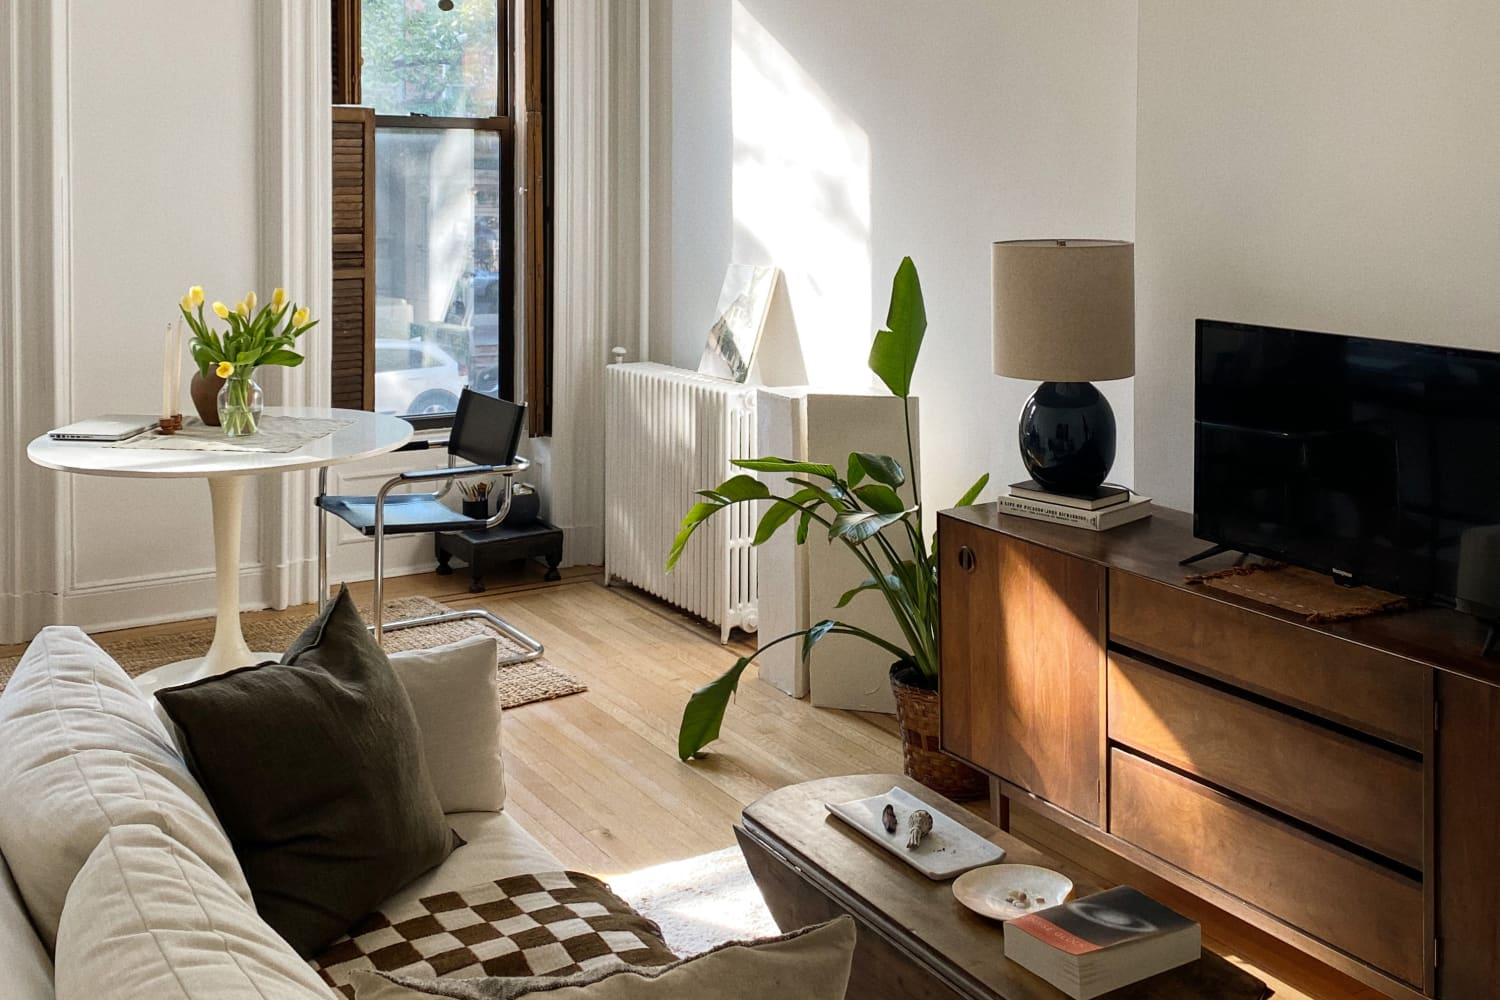 A Quintessential Brooklyn Brownstone Shows How Neutrals Make a Tranquil Home